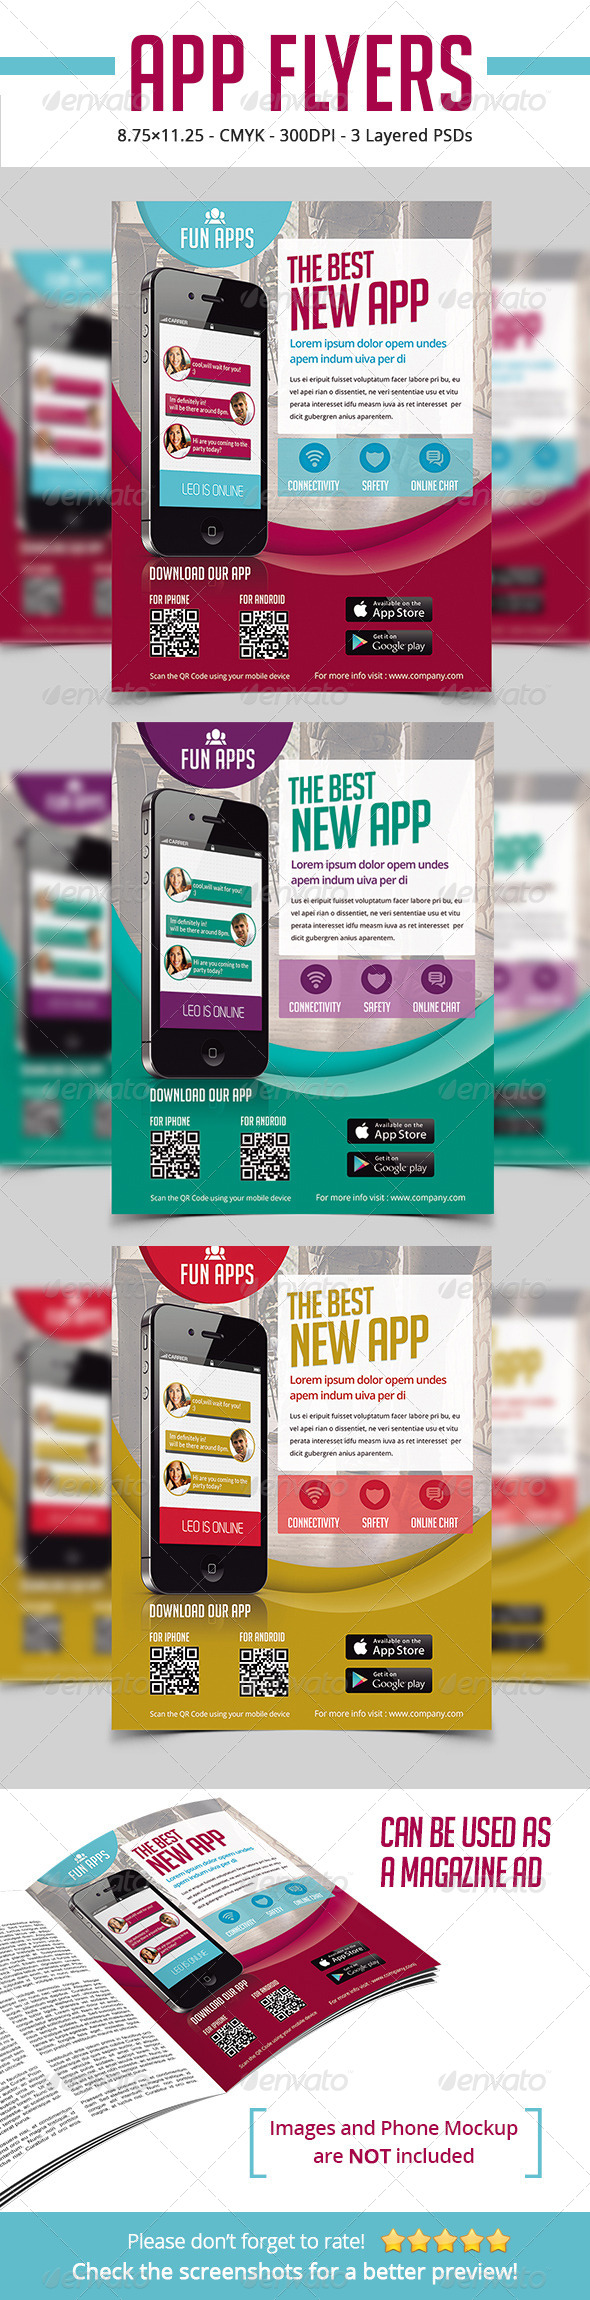 App Flyers / Magazine Ads - Commerce Flyers